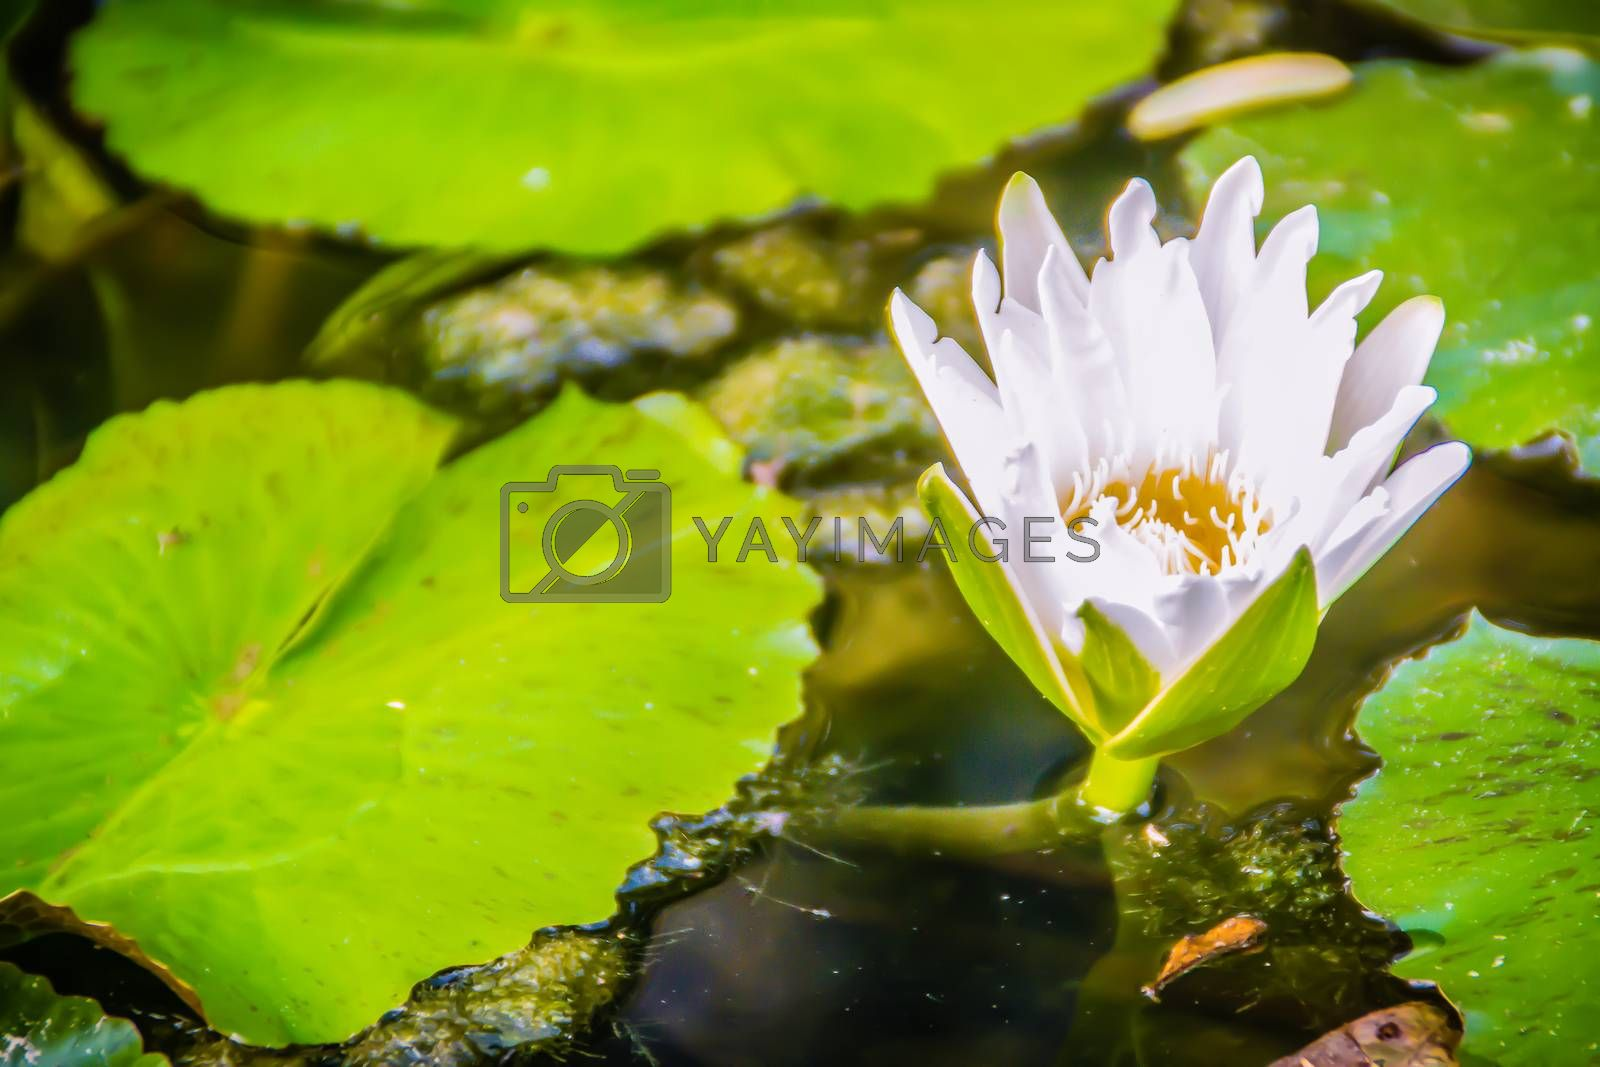 White lotus with yellow pollen with green leaves background. Bloom white water lily flowers with yellow pollen in the pond.